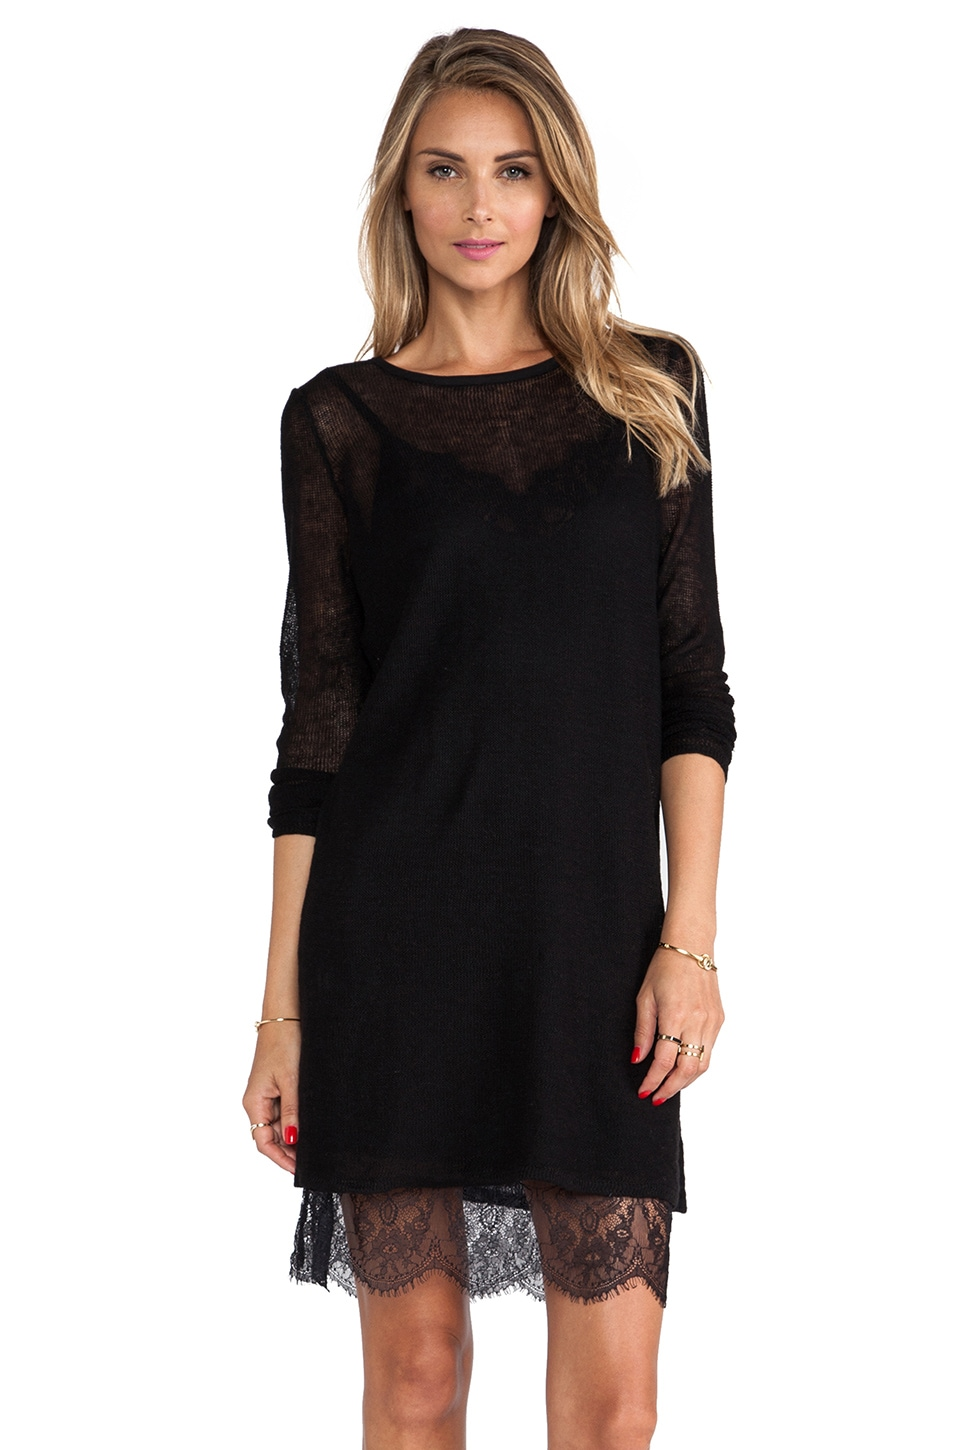 Free People Jane Eyre Twofer Sweater in Black